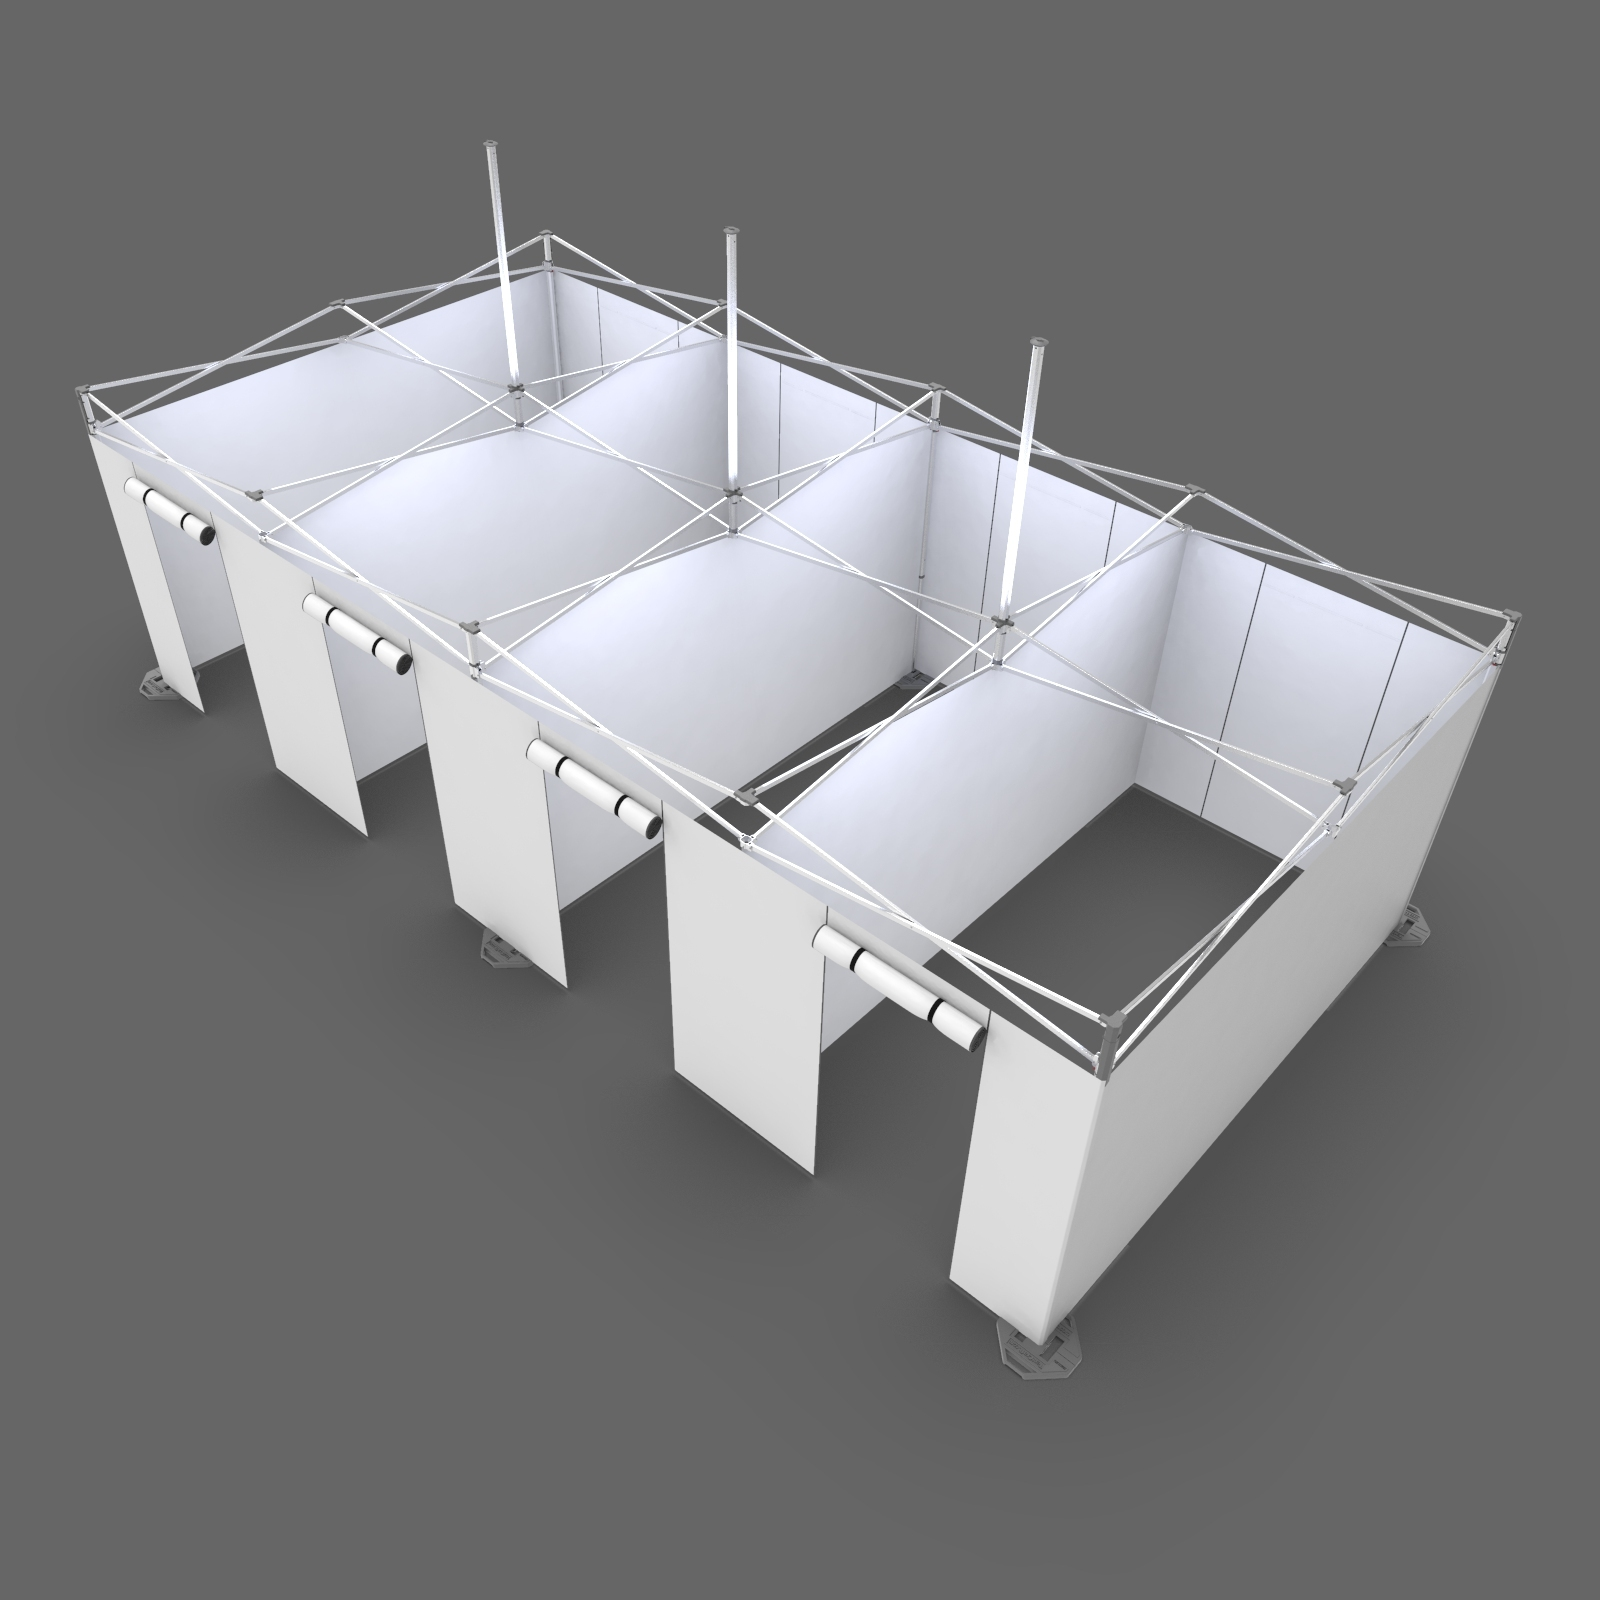 inside view of 13x26, spacious, four-room medical hospital tent for coronavirus treatment